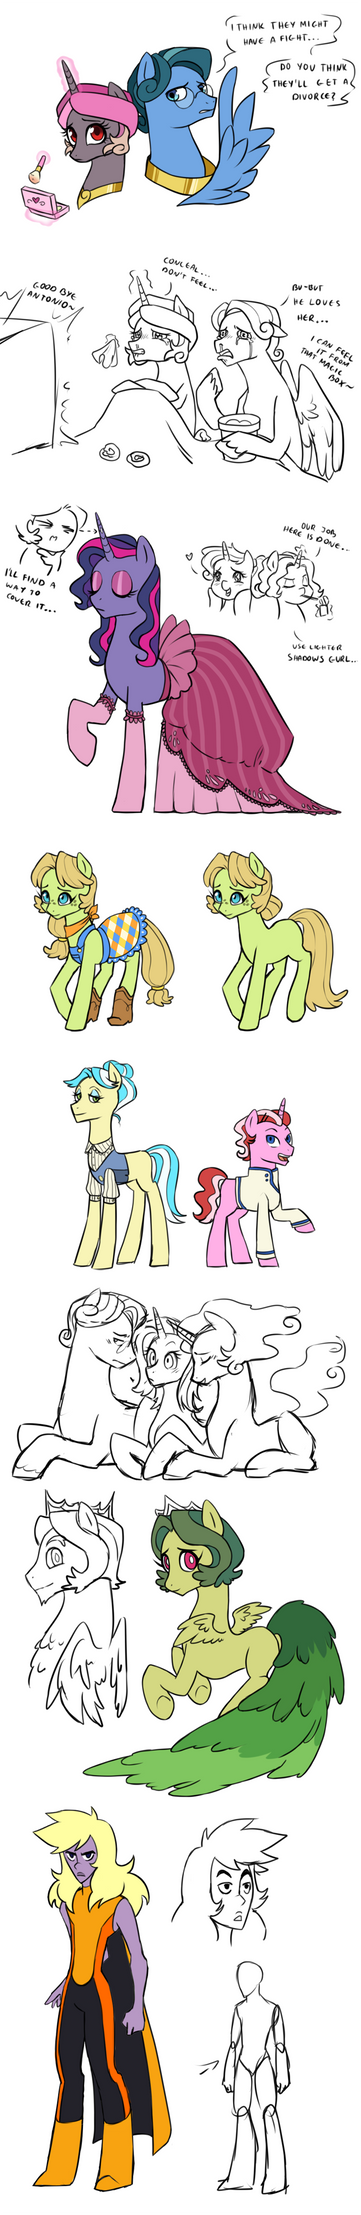 Another doodles by Pikokko